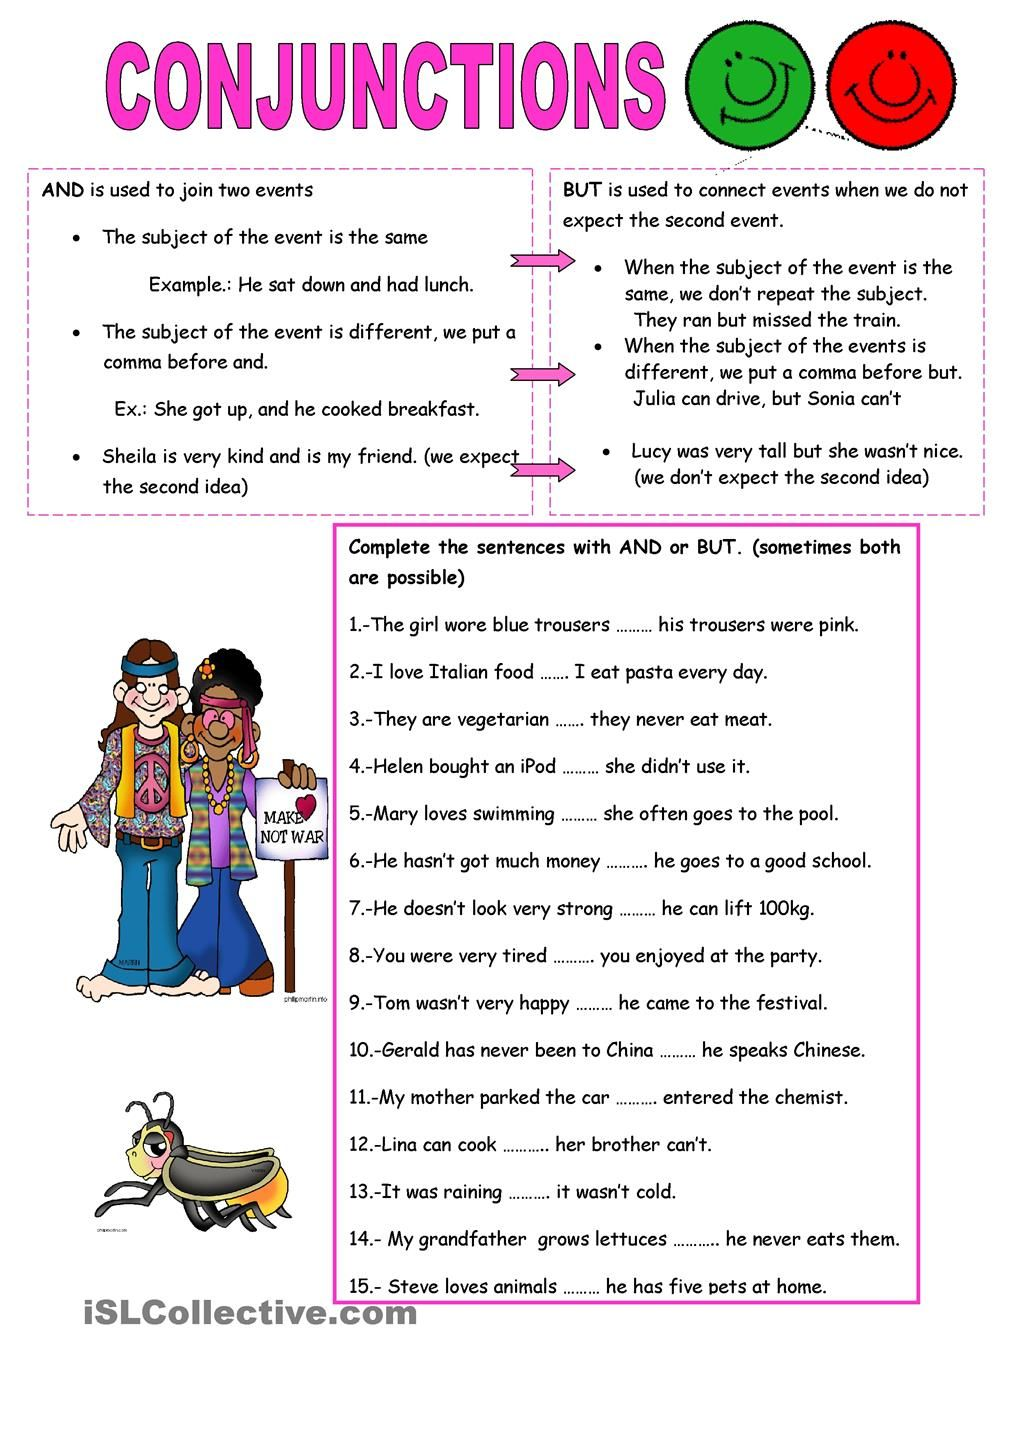 Conjunctions And But Conjunctions Worksheet Grammar Worksheets English Grammar Worksheets [ 1440 x 1018 Pixel ]